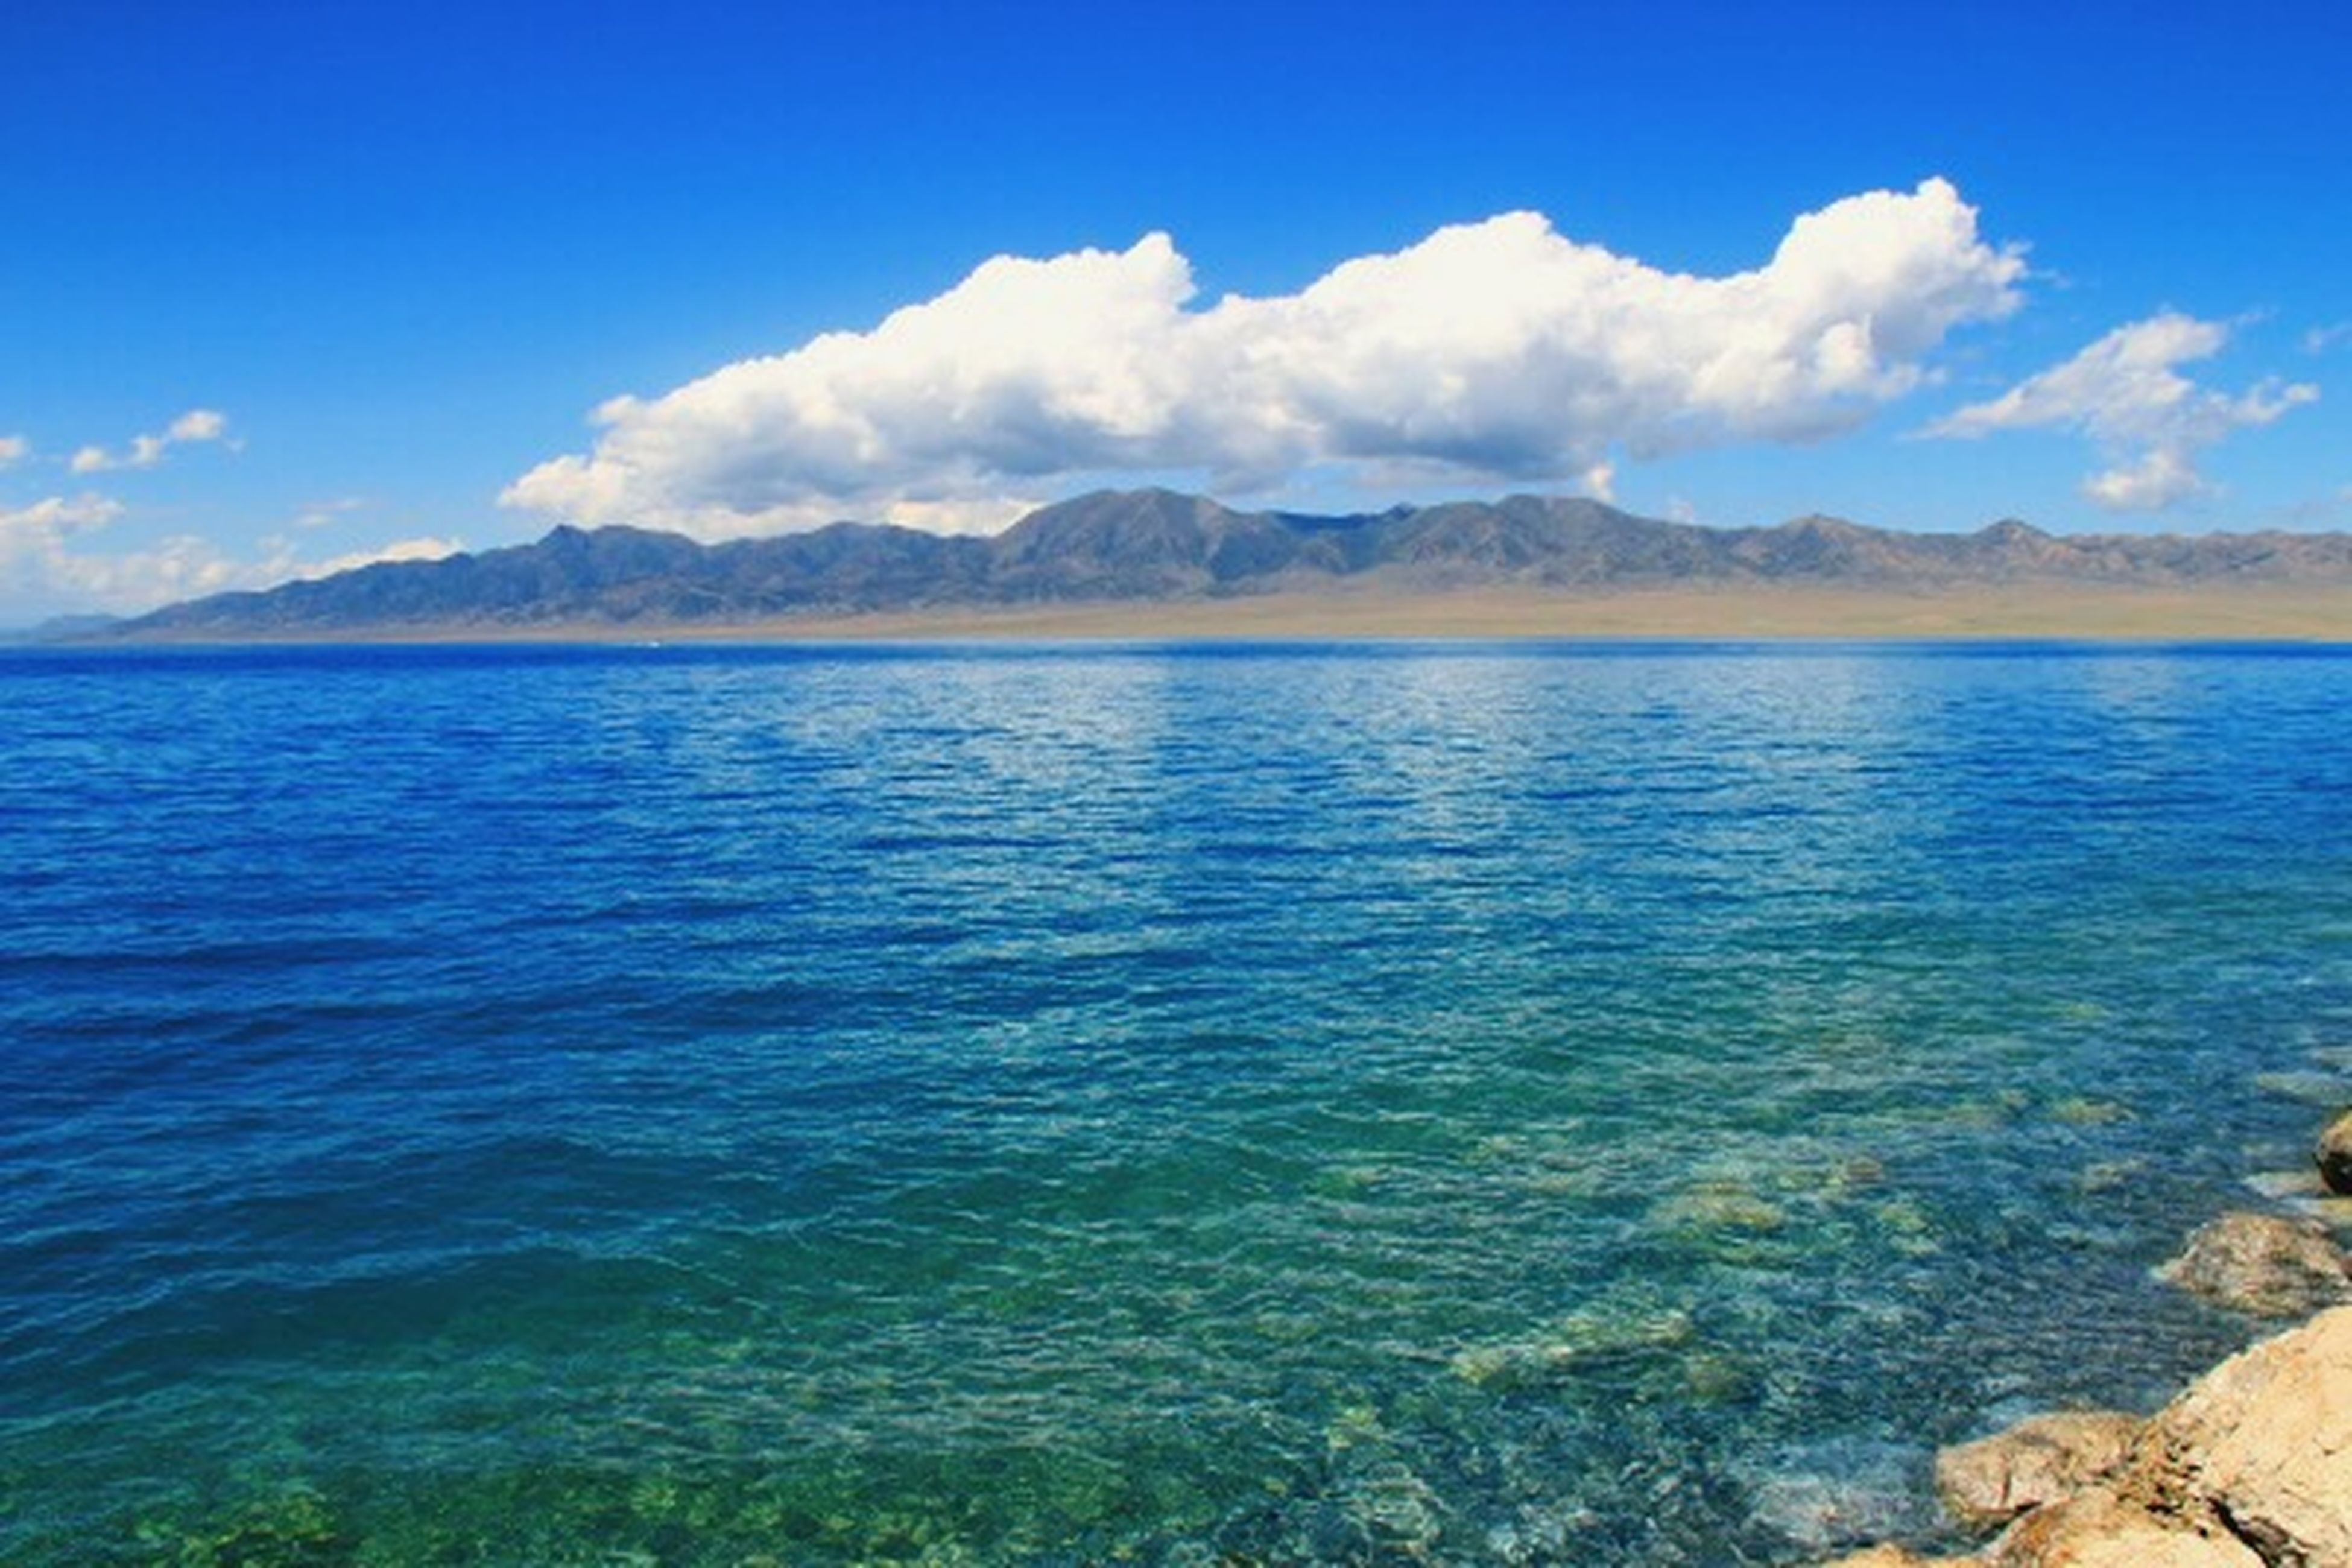 mountain, water, sky, tranquil scene, scenics, tranquility, mountain range, beauty in nature, blue, sea, cloud - sky, nature, cloud, lake, idyllic, rippled, waterfront, non-urban scene, day, calm